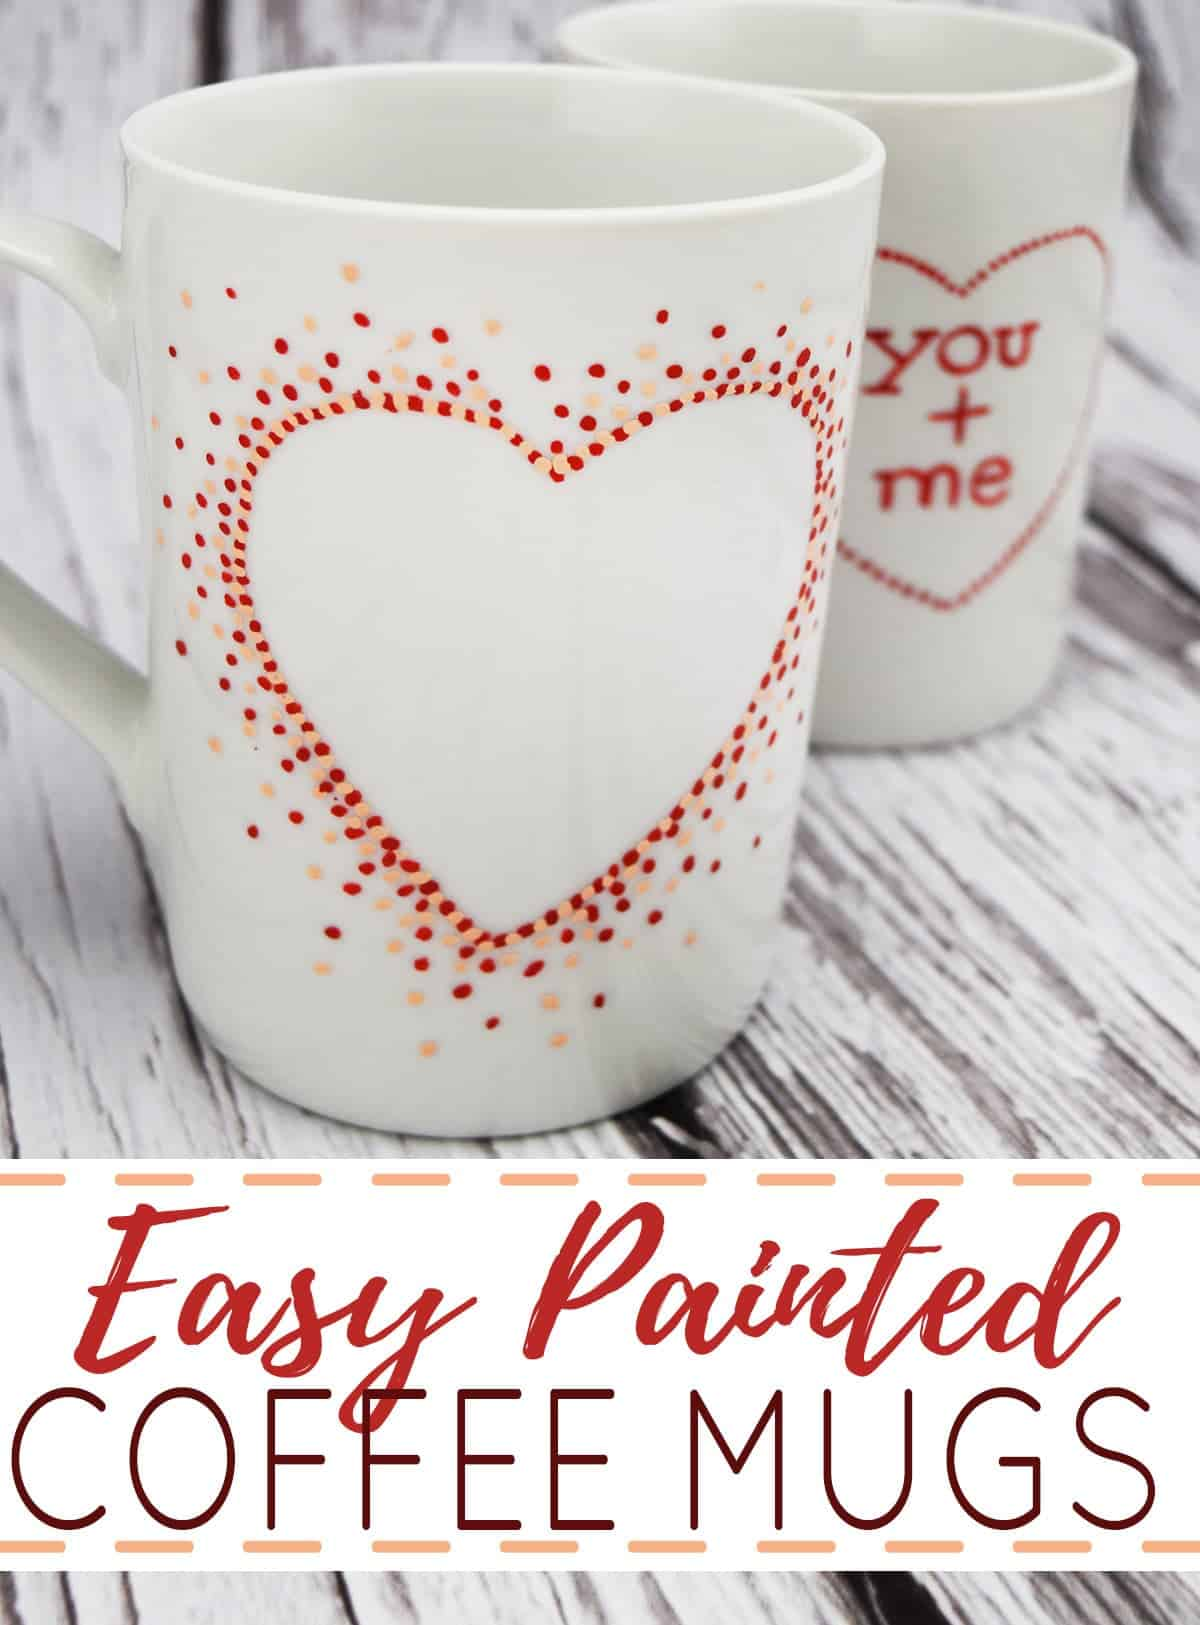 White ceramic coffee mugs with hand painted polka dot heart shapes on white wood planks.